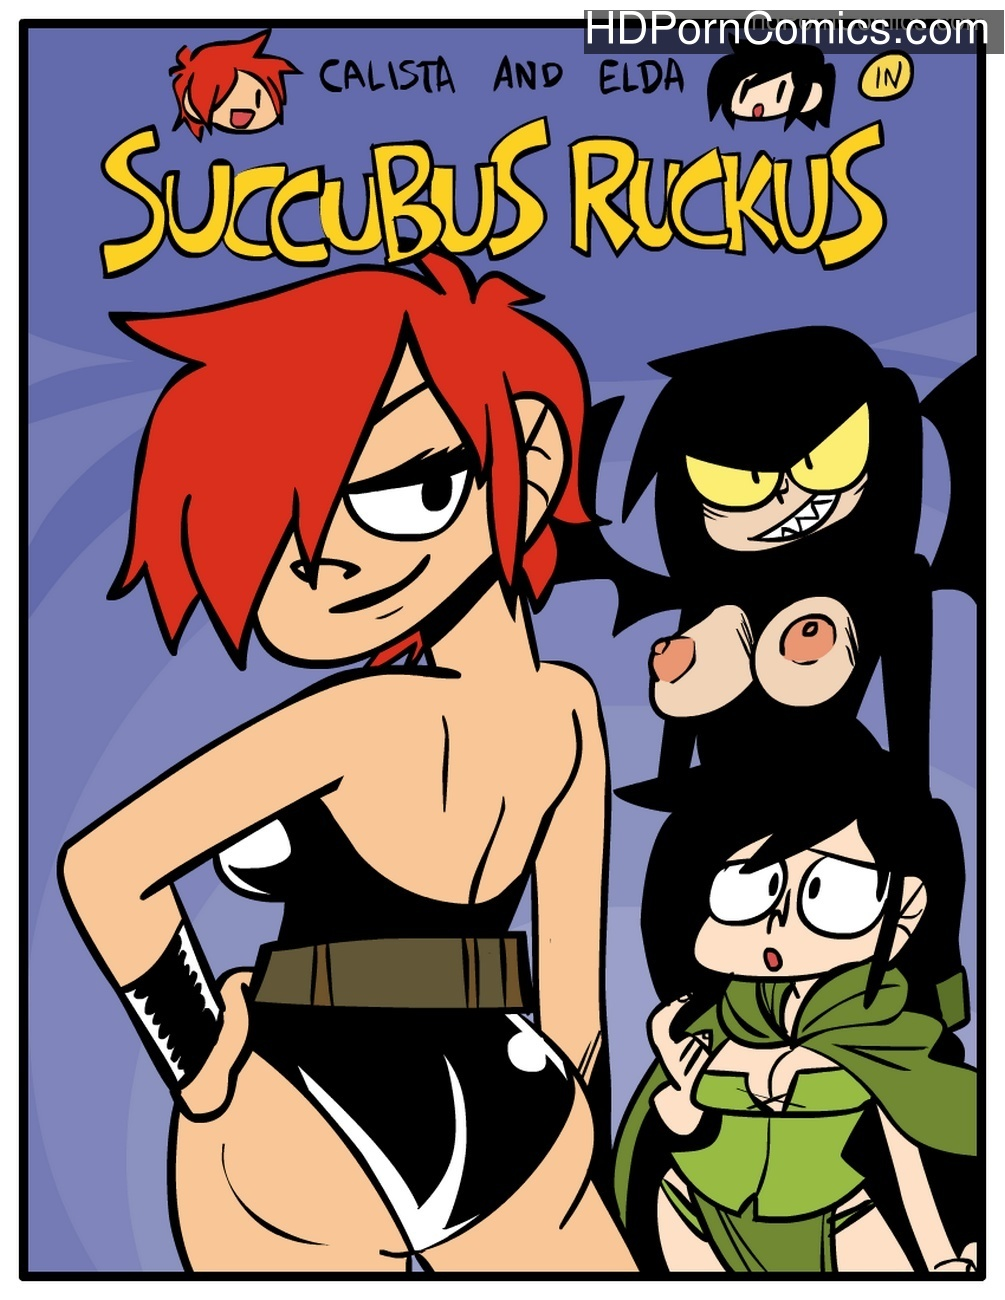 Calista And Elda In Succubus Ruckus 1 free sex comic